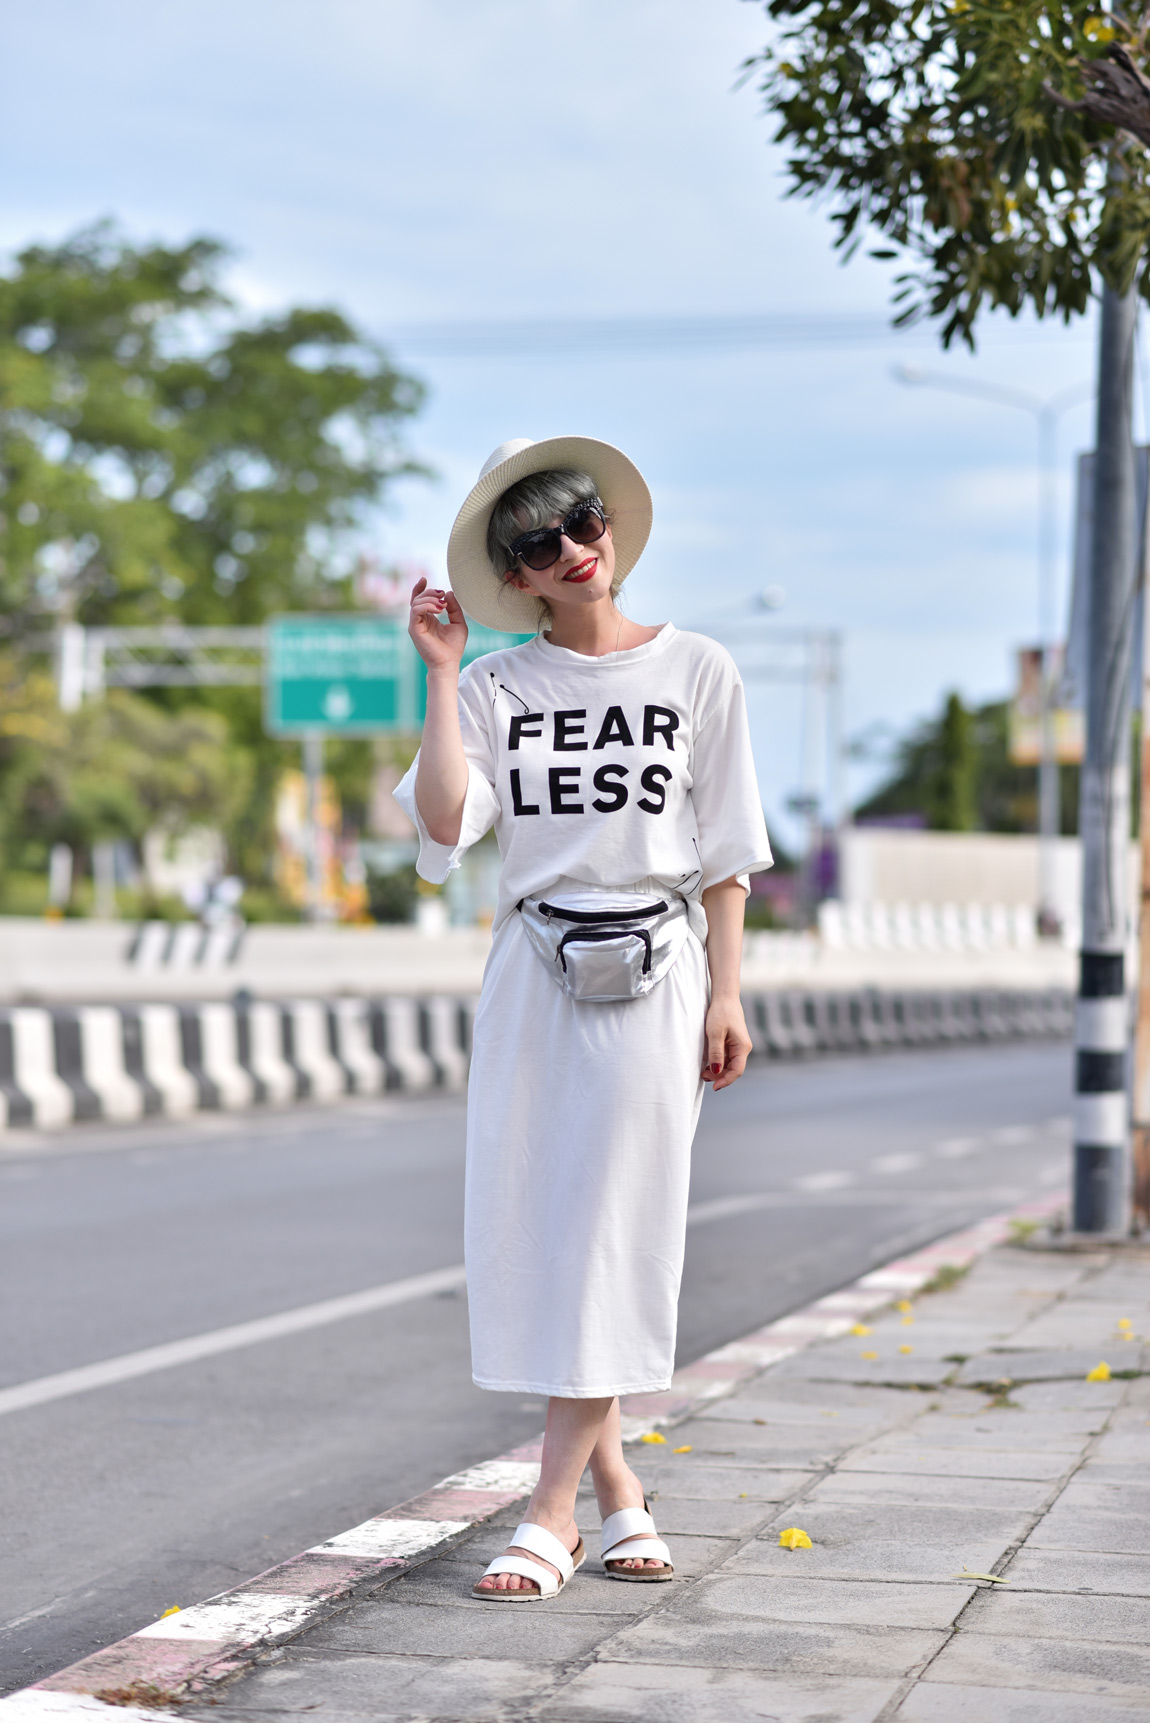 thailand, urlaub, travel, holiday, outfit, fashionblogger, modeblogger, blogger, inspiration, reise, tipps, weiss, look, ootd